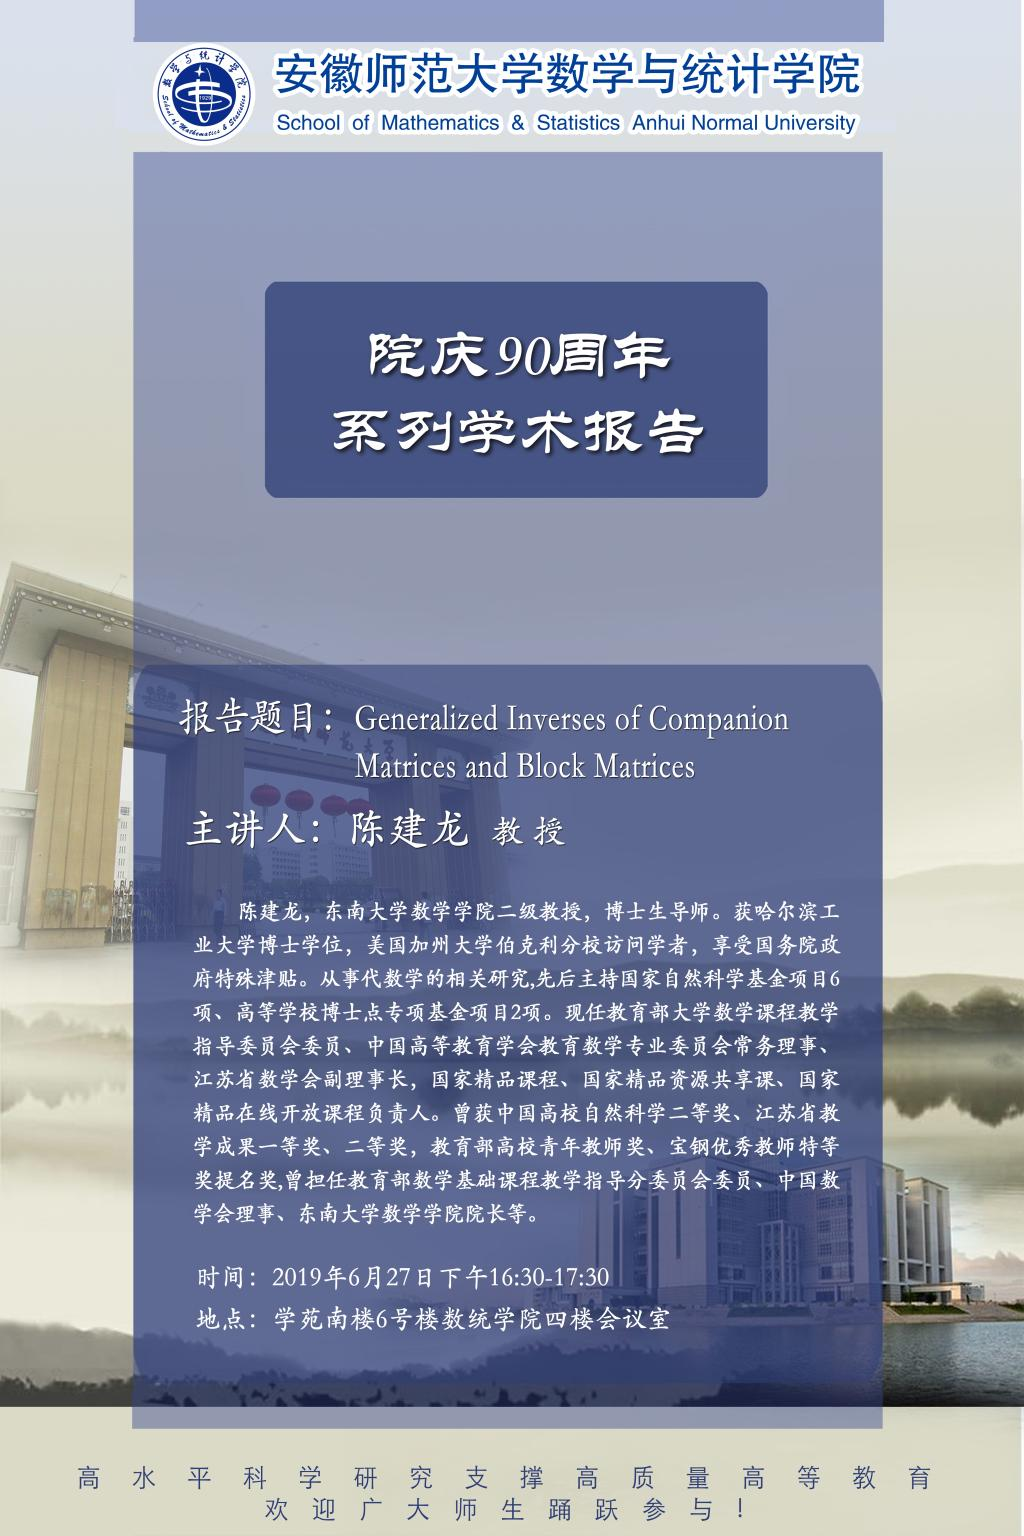 【学术预告】数统学院学术报告:Generalized Inverses of Companion Matrices and Block Matrices